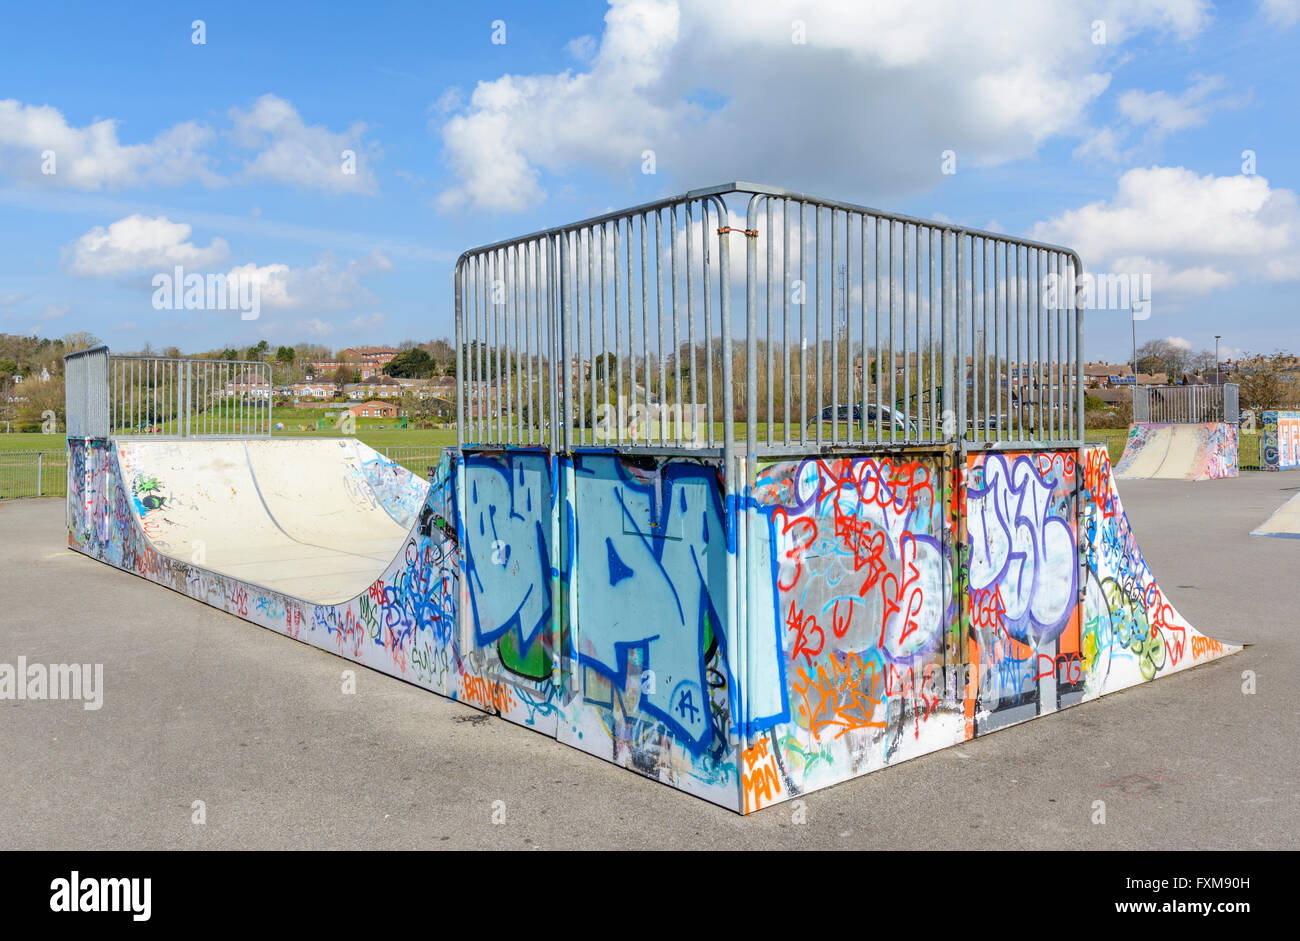 Skateboard ramp in a skatepark in Lewes, East Sussex, England, UK. - Stock Image